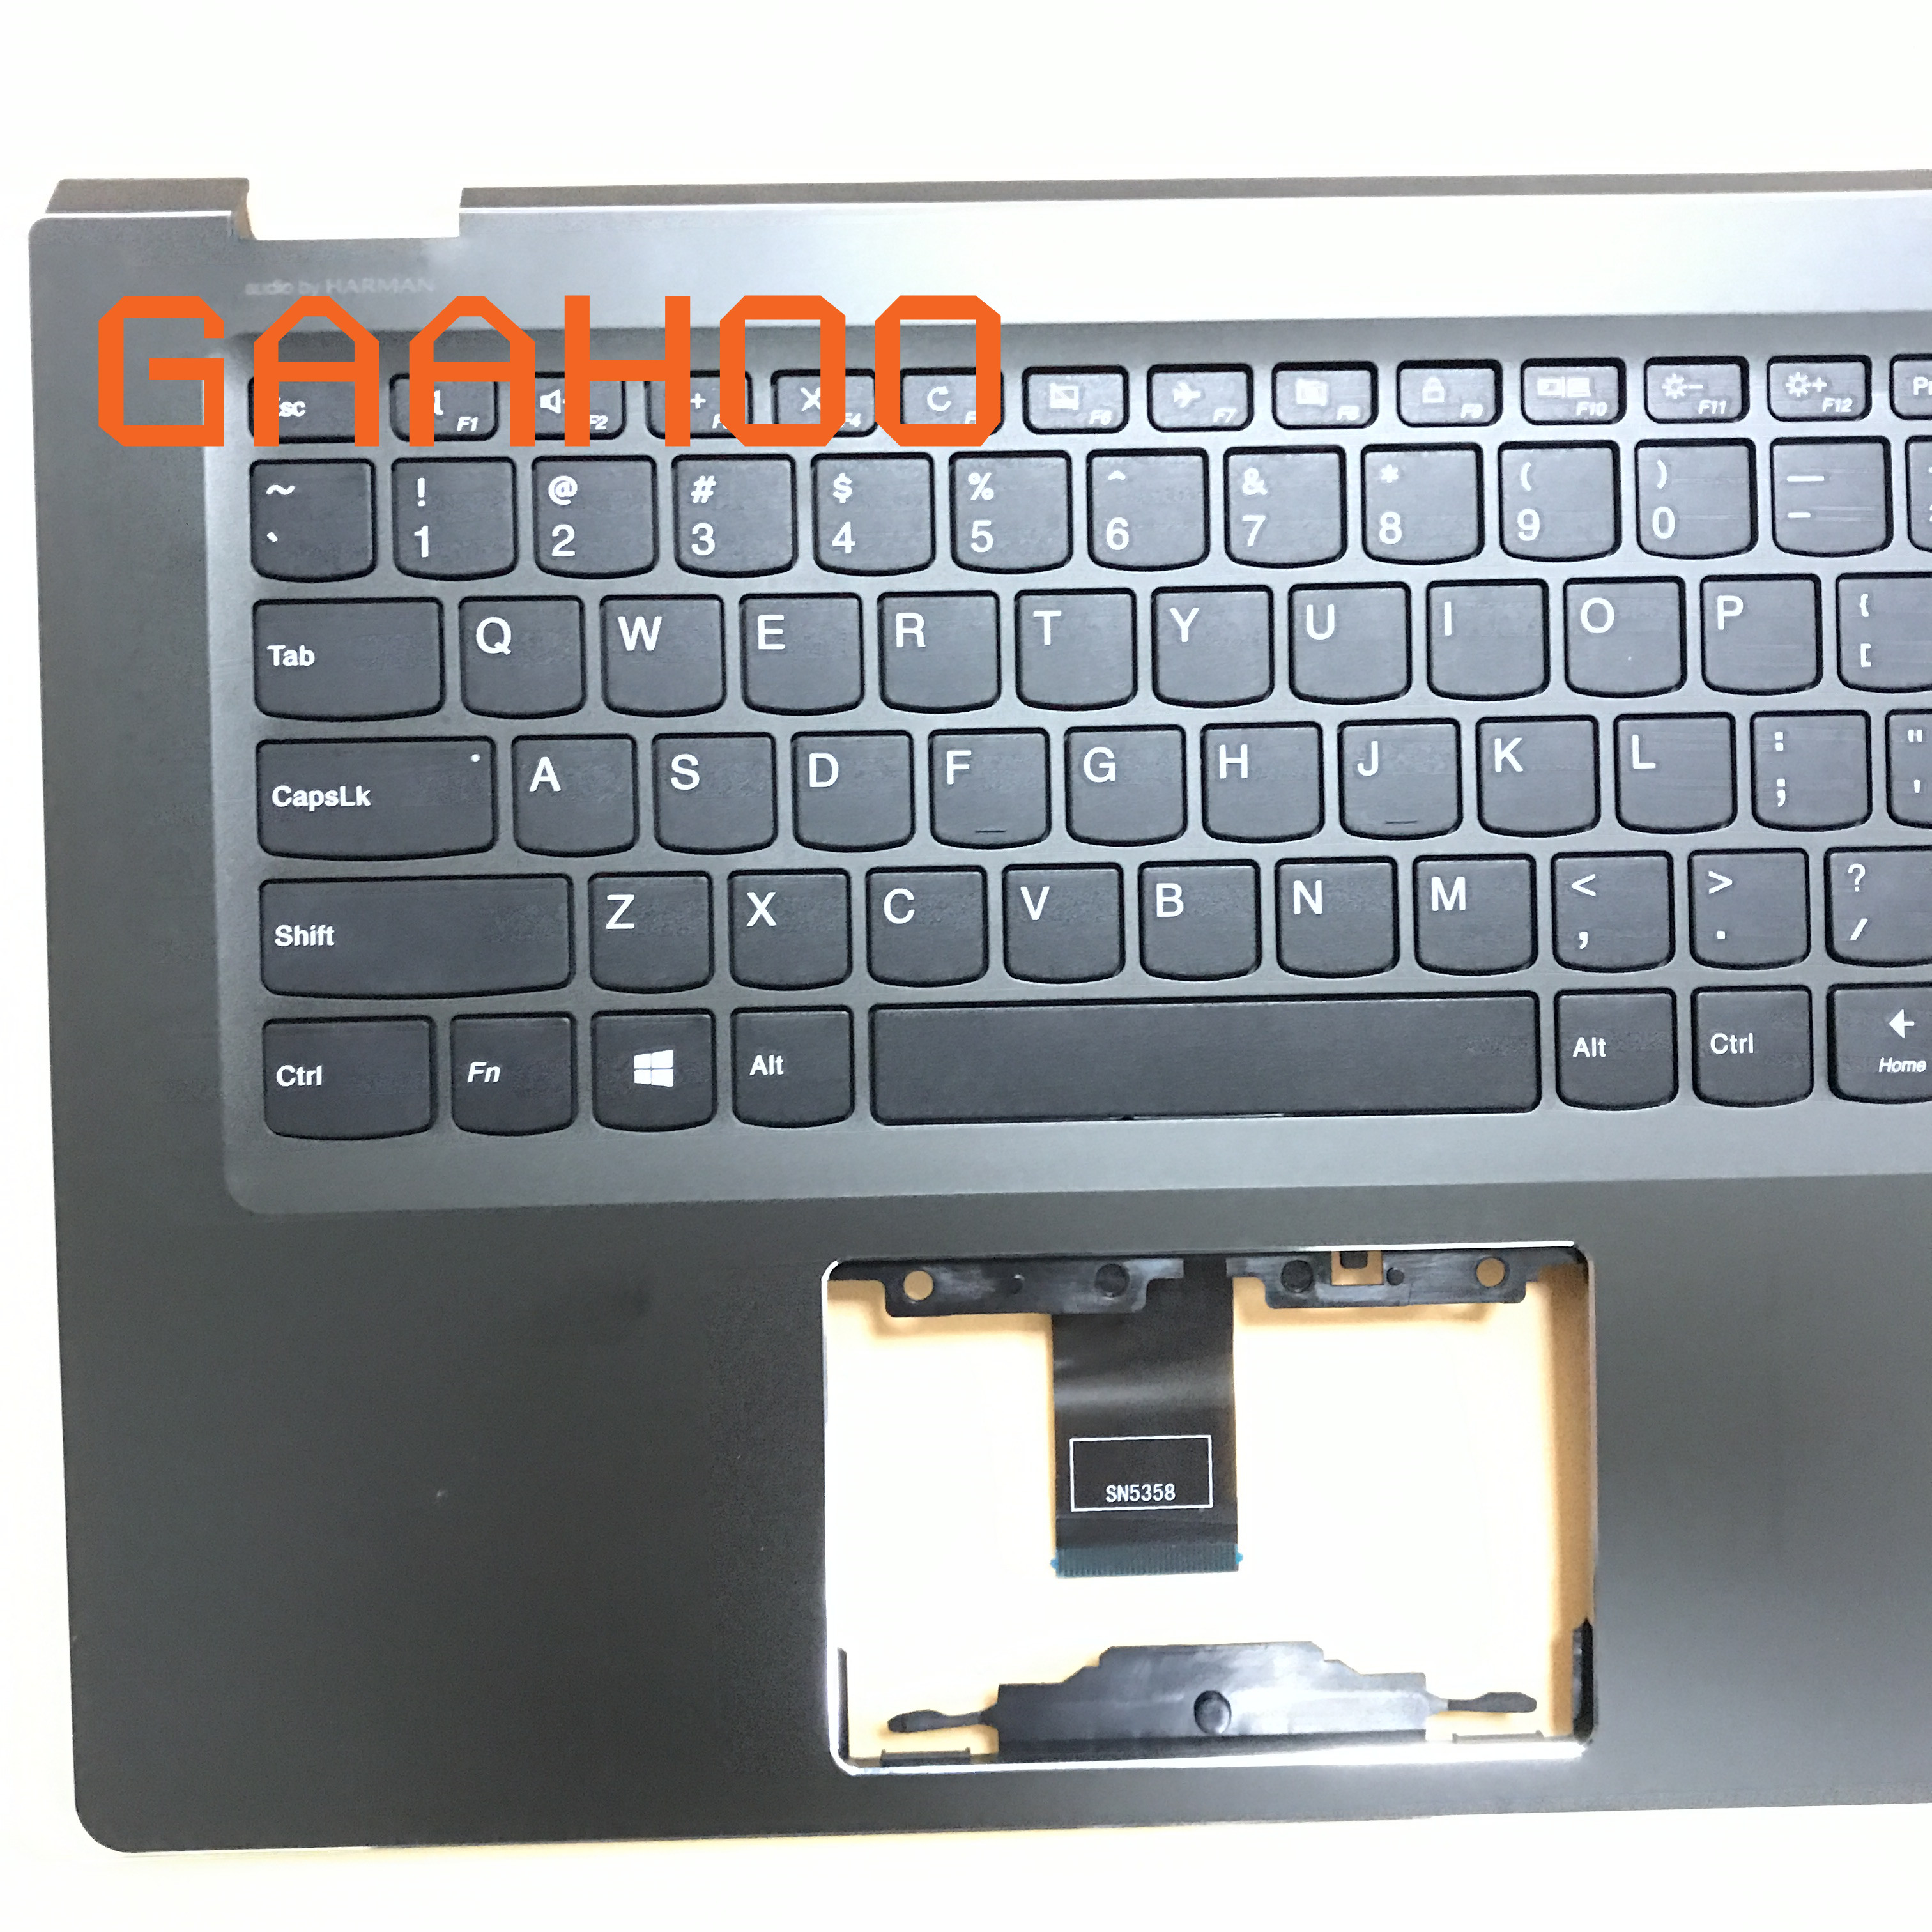 NEW US English Keyboard for Lenovo ideapad FLEX 4-14 4-1470 4-1480 NON-BACKLIT